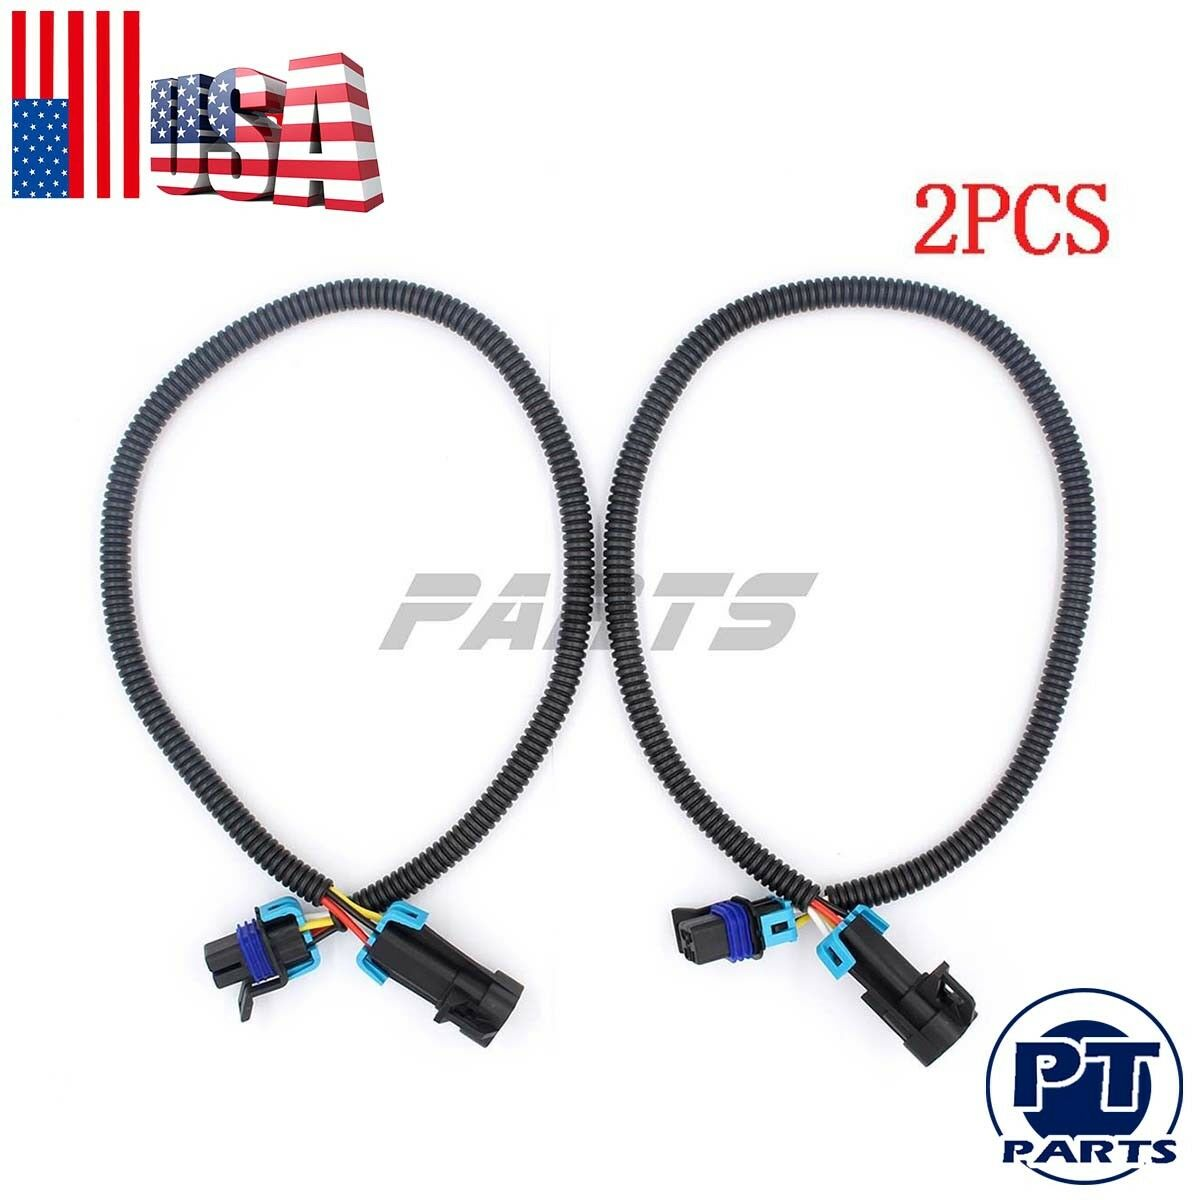 2pcs 24 Ls1 Camaro Firebird Oxygen O2 Sensor Header Extension Wiring Specialties Install Harness 1 Of 4free Shipping See More